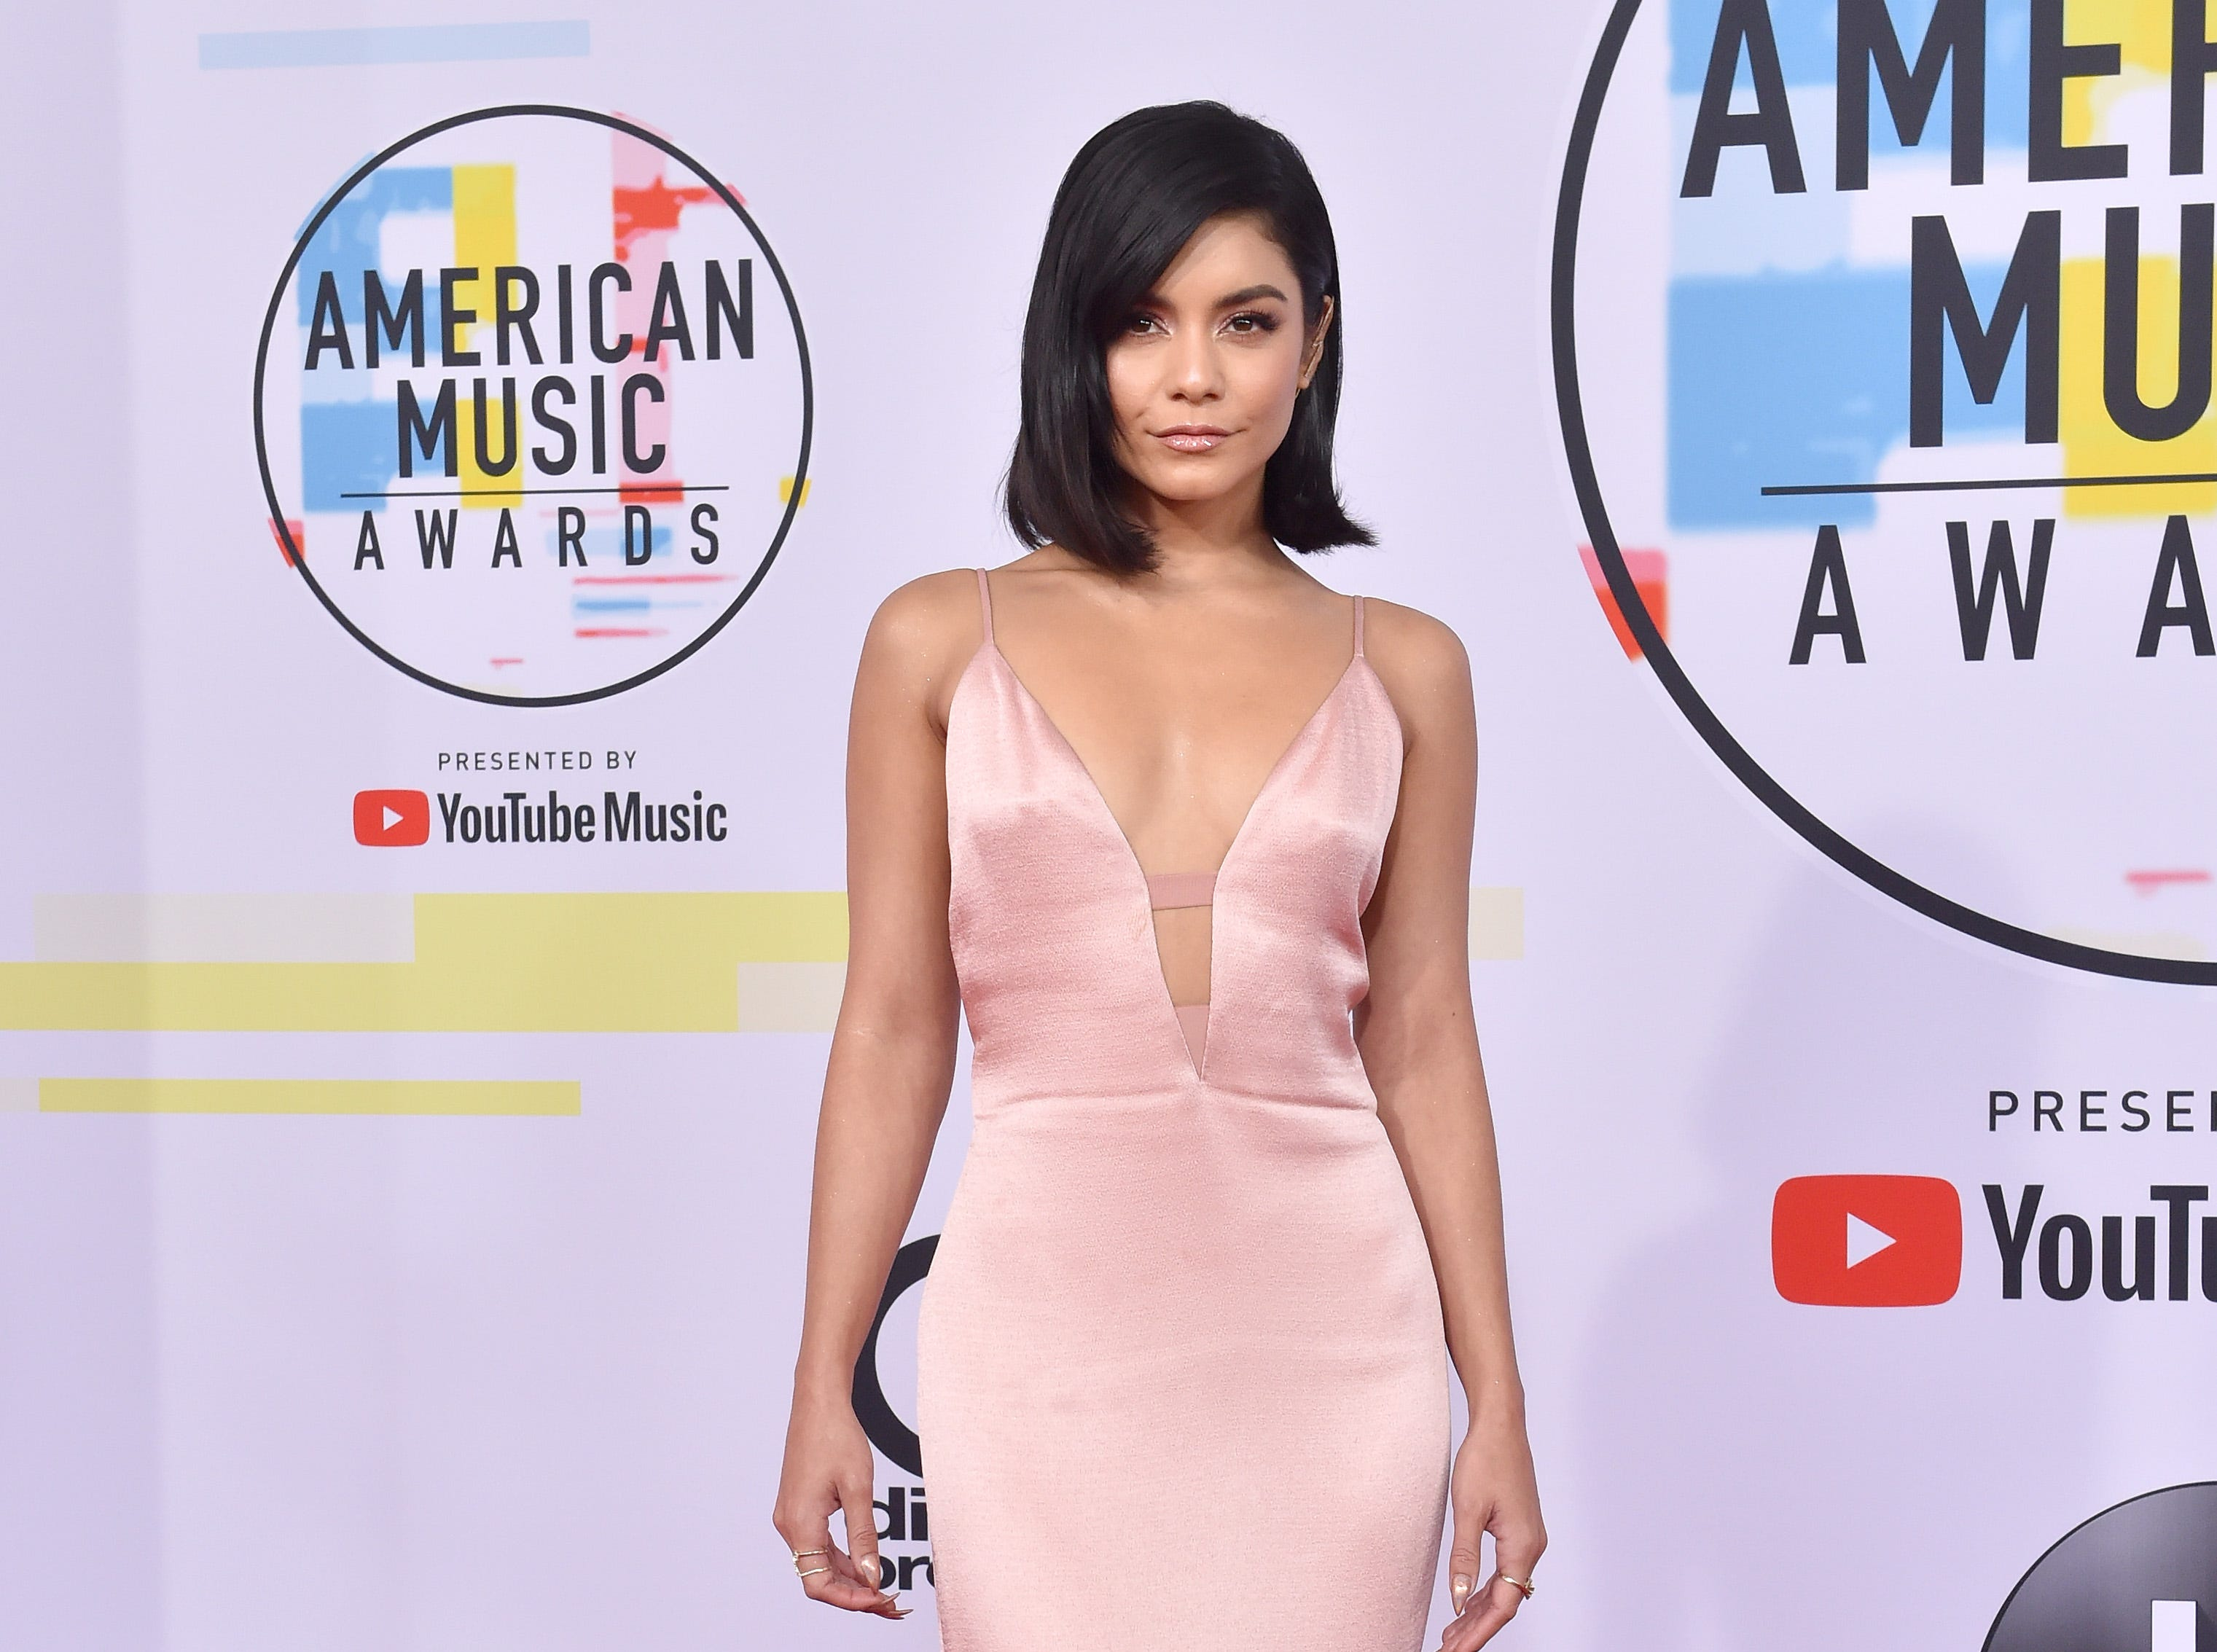 LOS ANGELES, CA - OCTOBER 09:  Vanessa Hudgens attends the 2018 American Music Awards at Microsoft Theater on October 9, 2018 in Los Angeles, California.  (Photo by Axelle/Bauer-Griffin/FilmMagic) ORG XMIT: 775232724 ORIG FILE ID: 1048613908